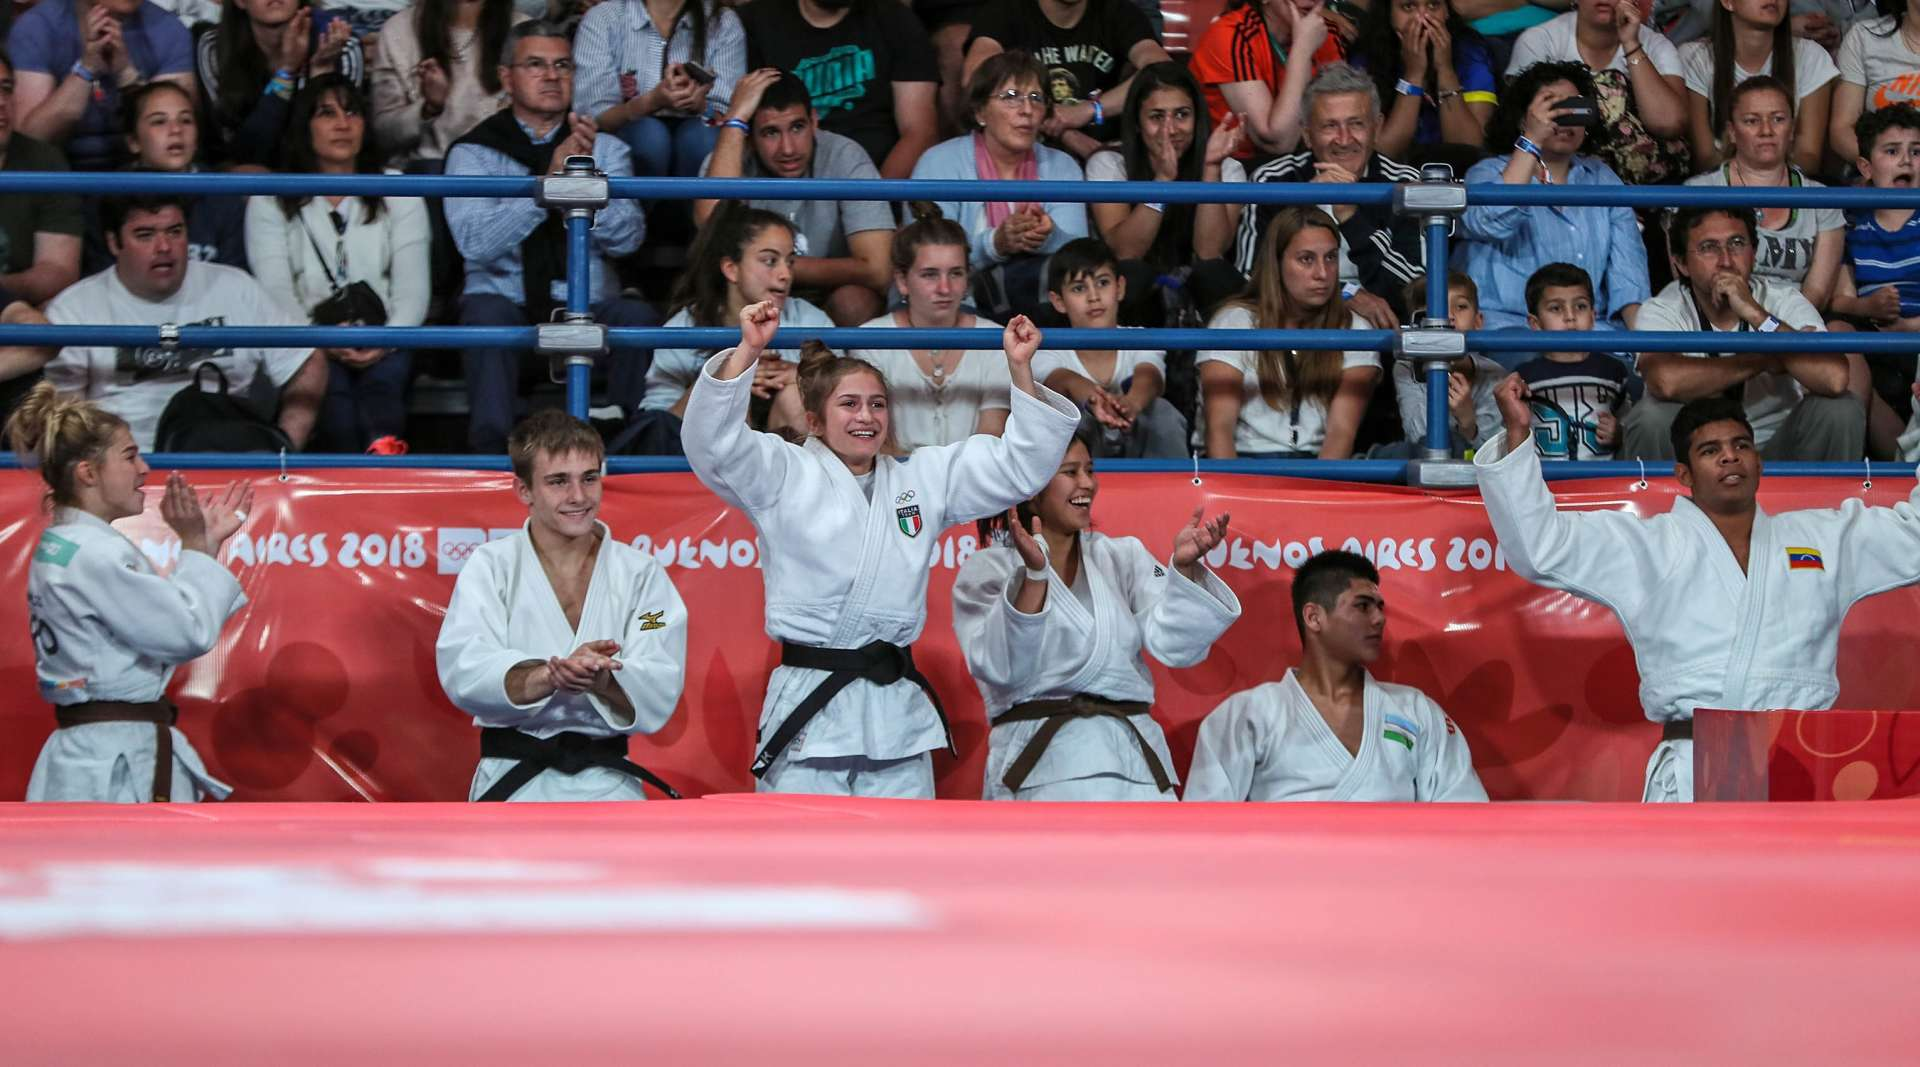 YOG2018: Top Five Images around the tatami / IJF org